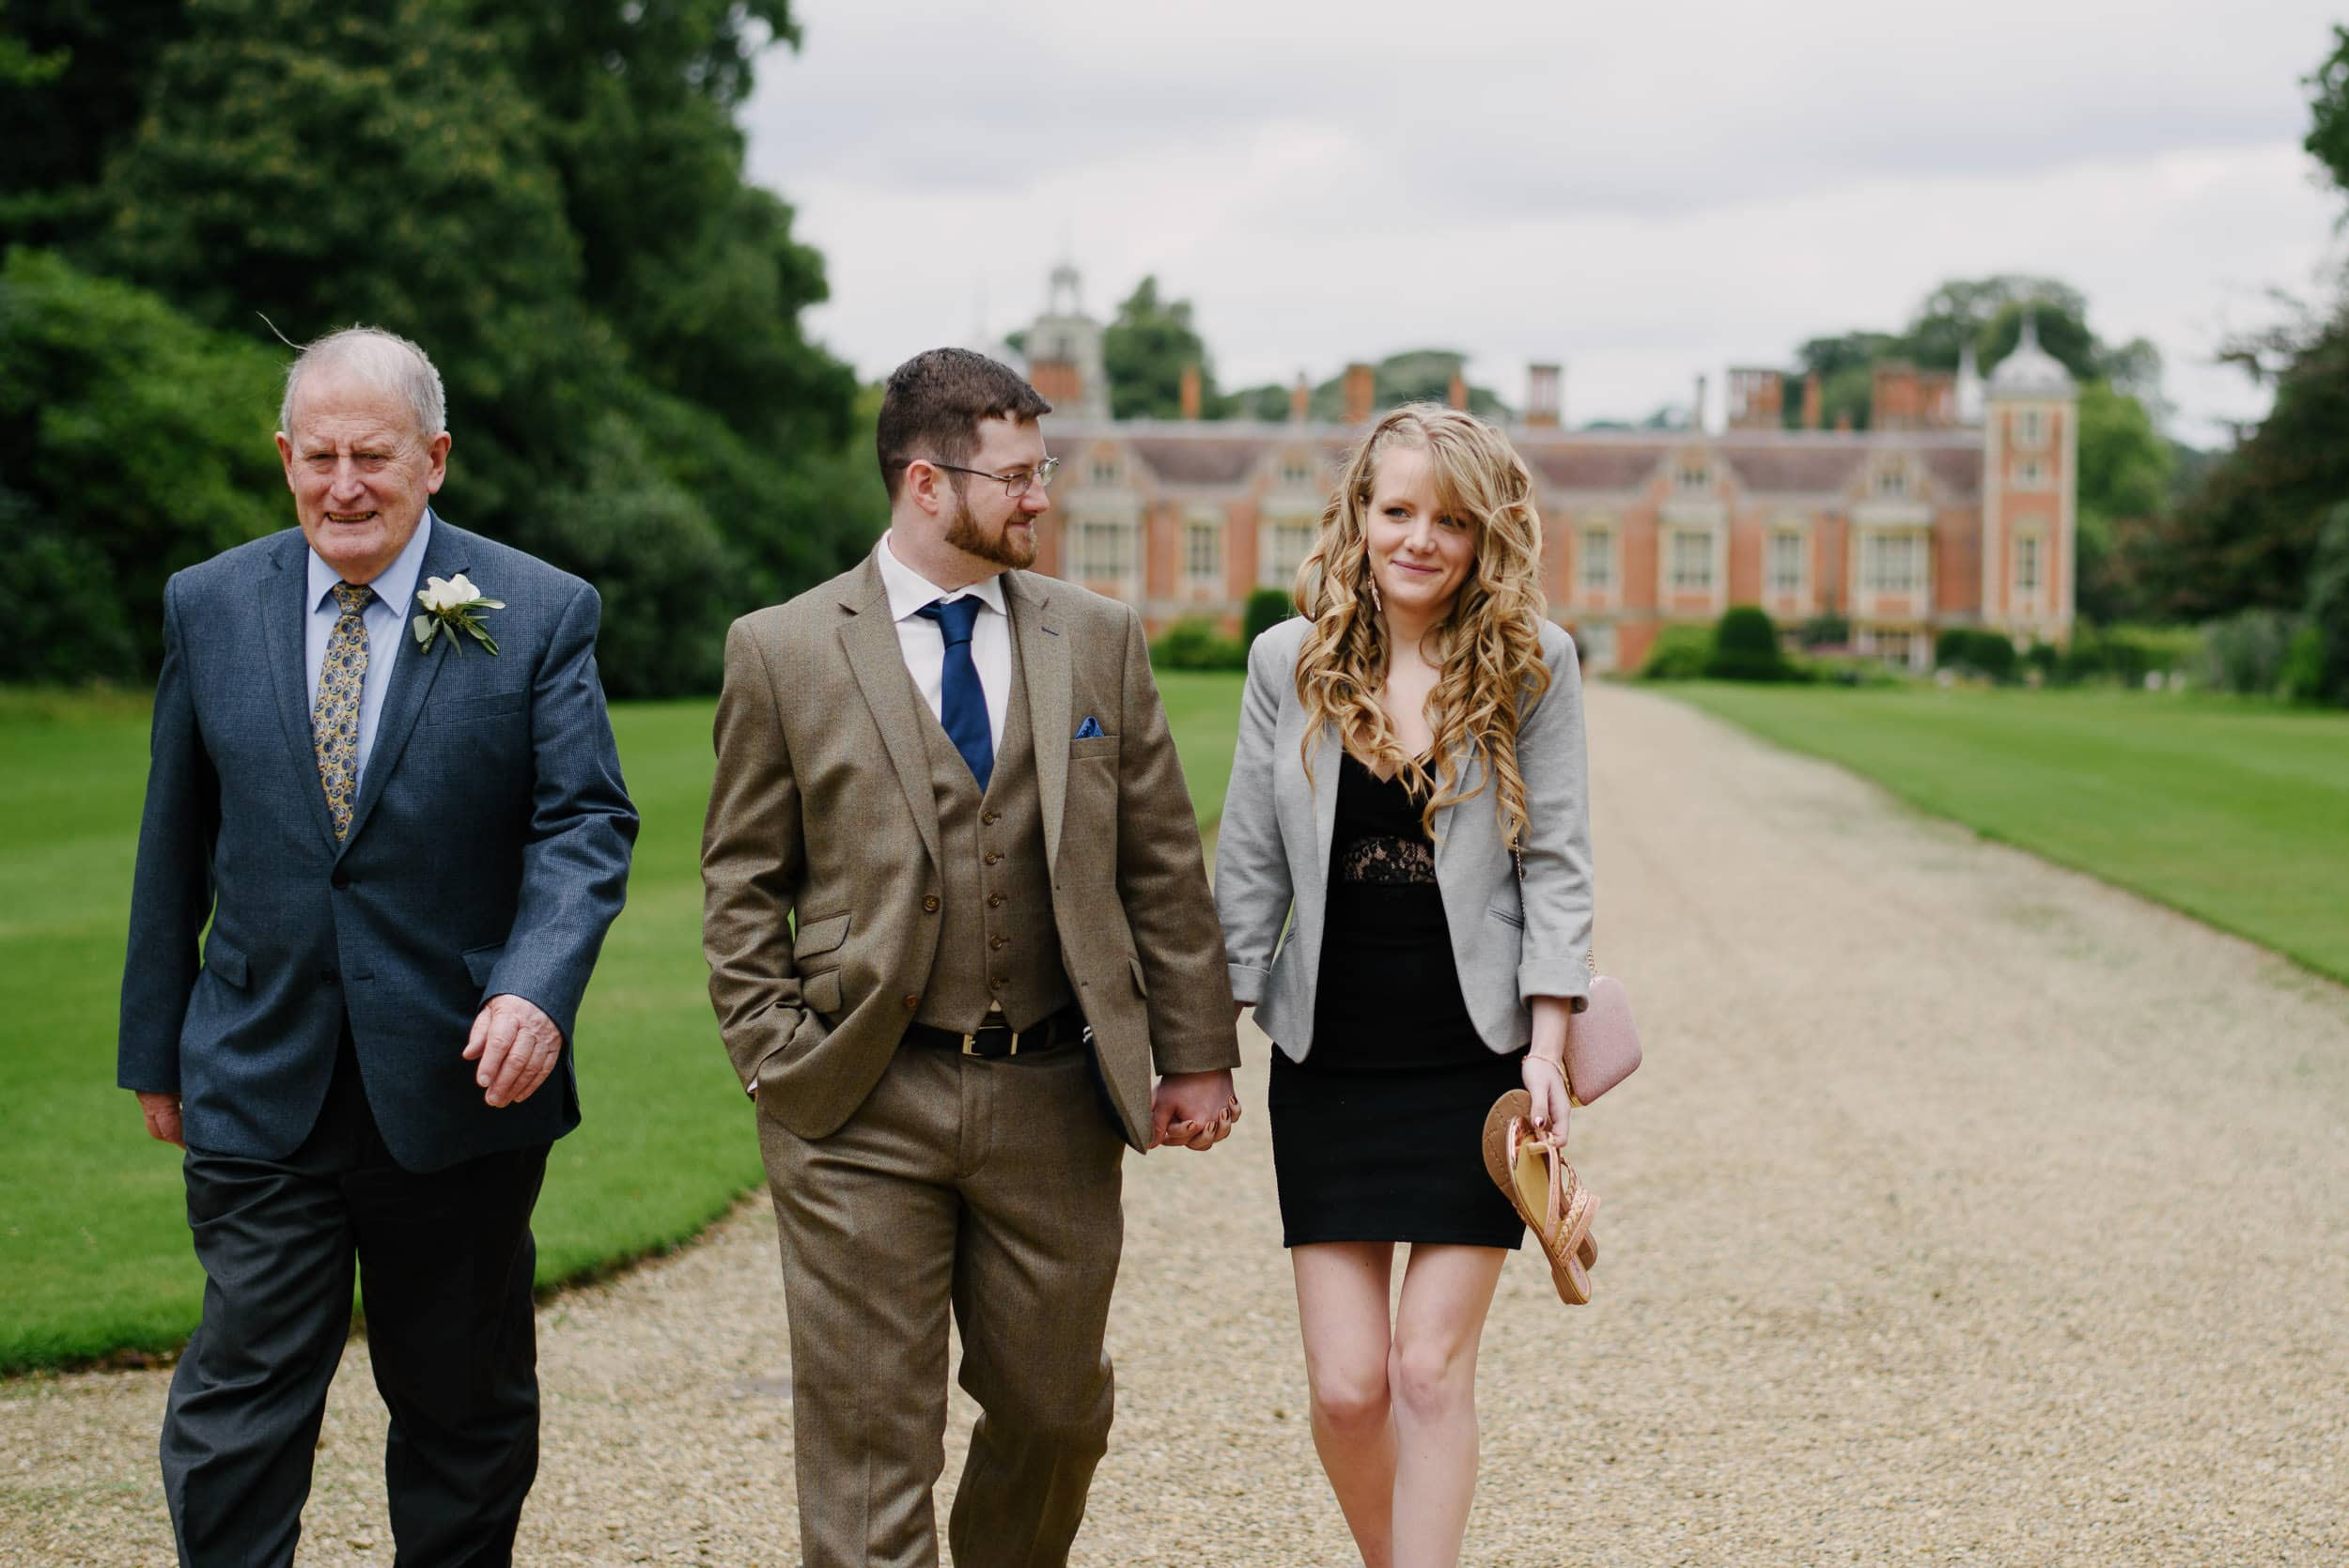 Suzy & Mike - Blickling Hall Wedding 5